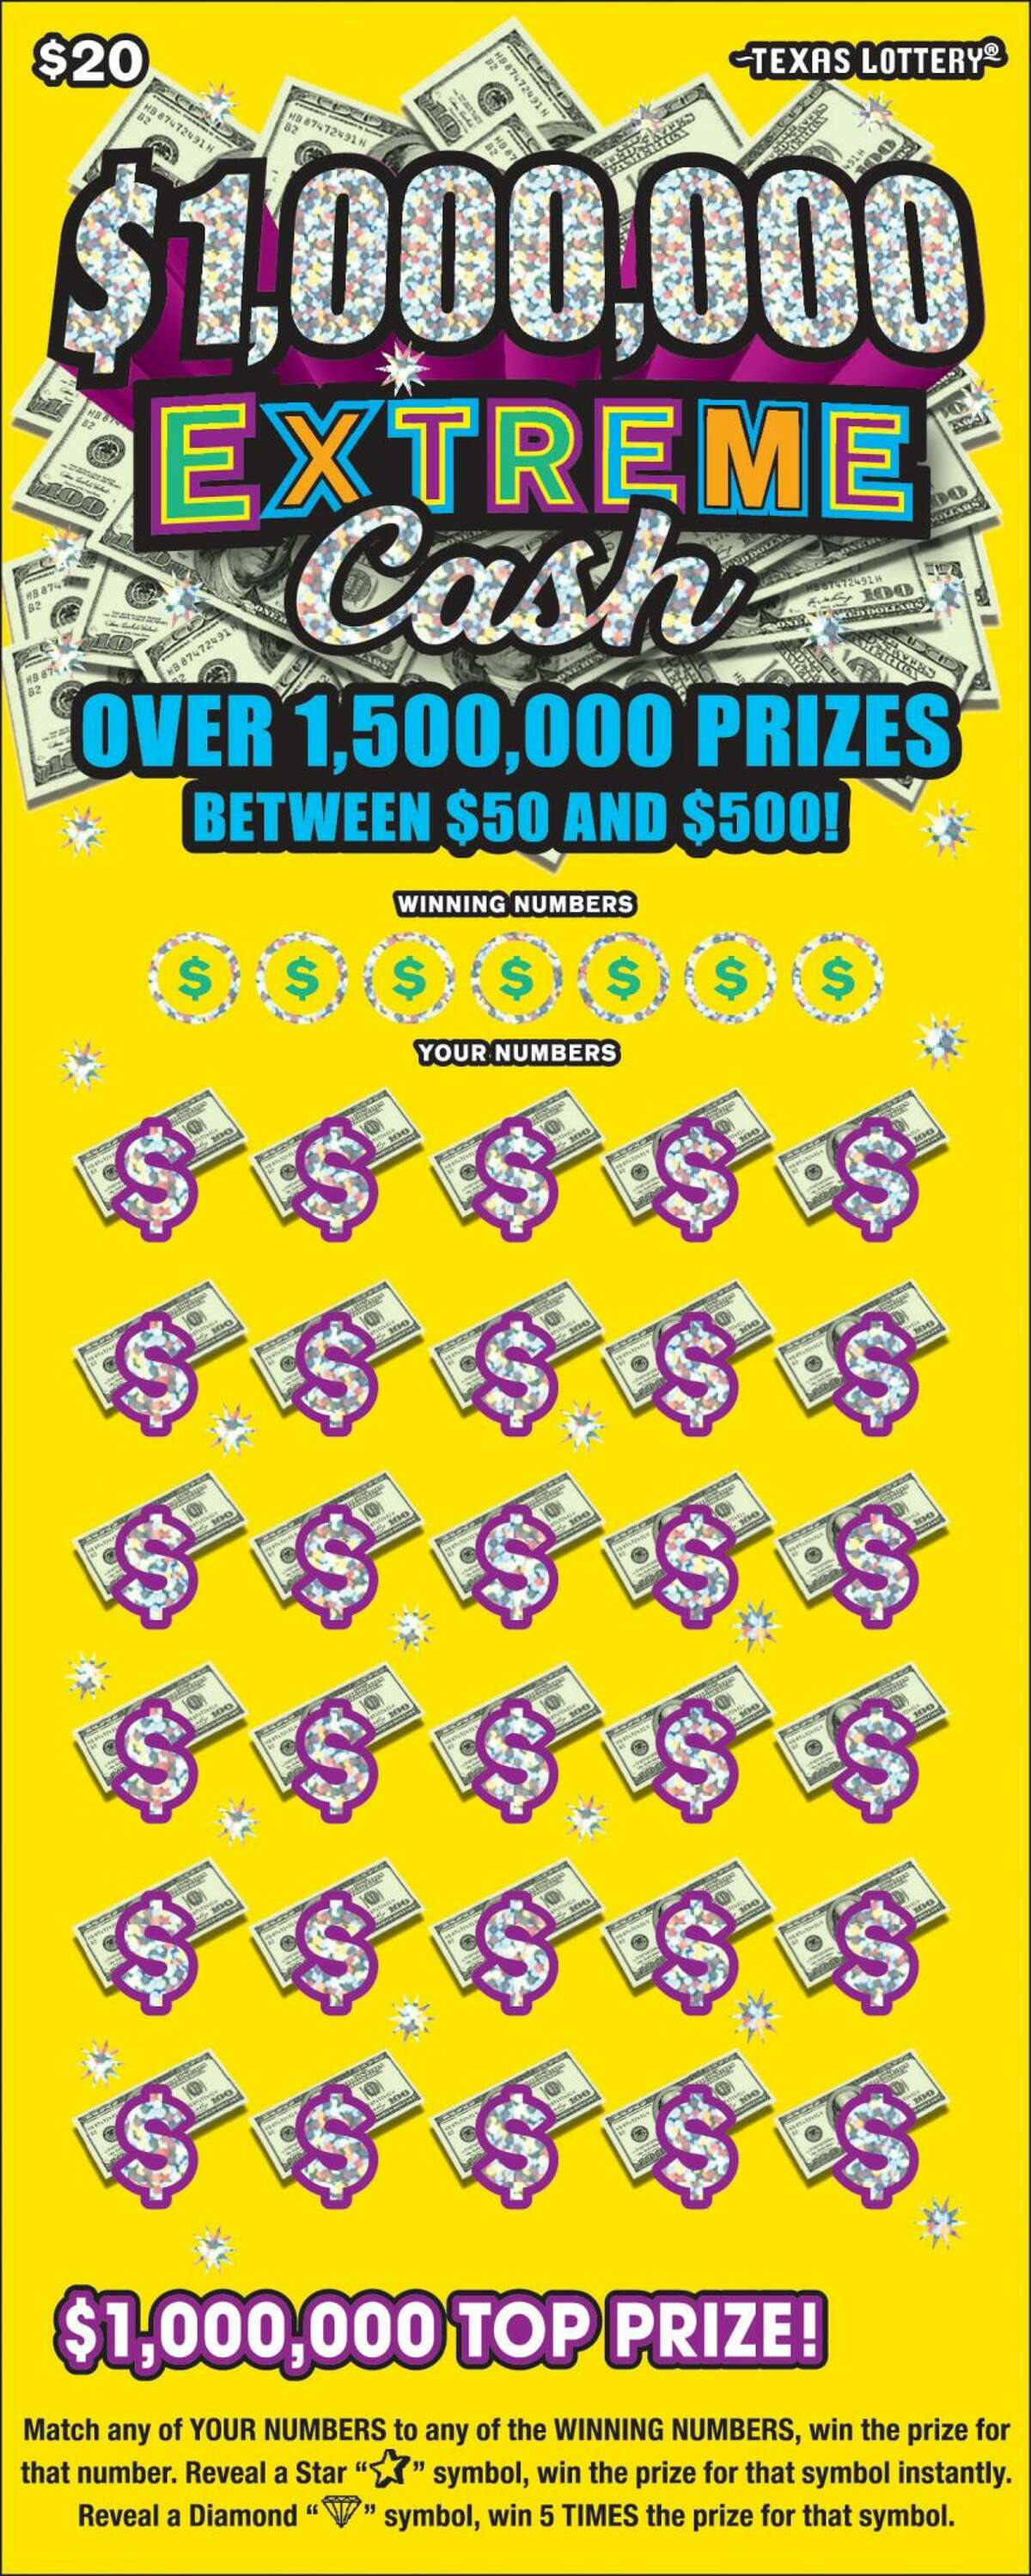 A Pleasanton resident won $1 million in Texas Lottery scratch ticket game.